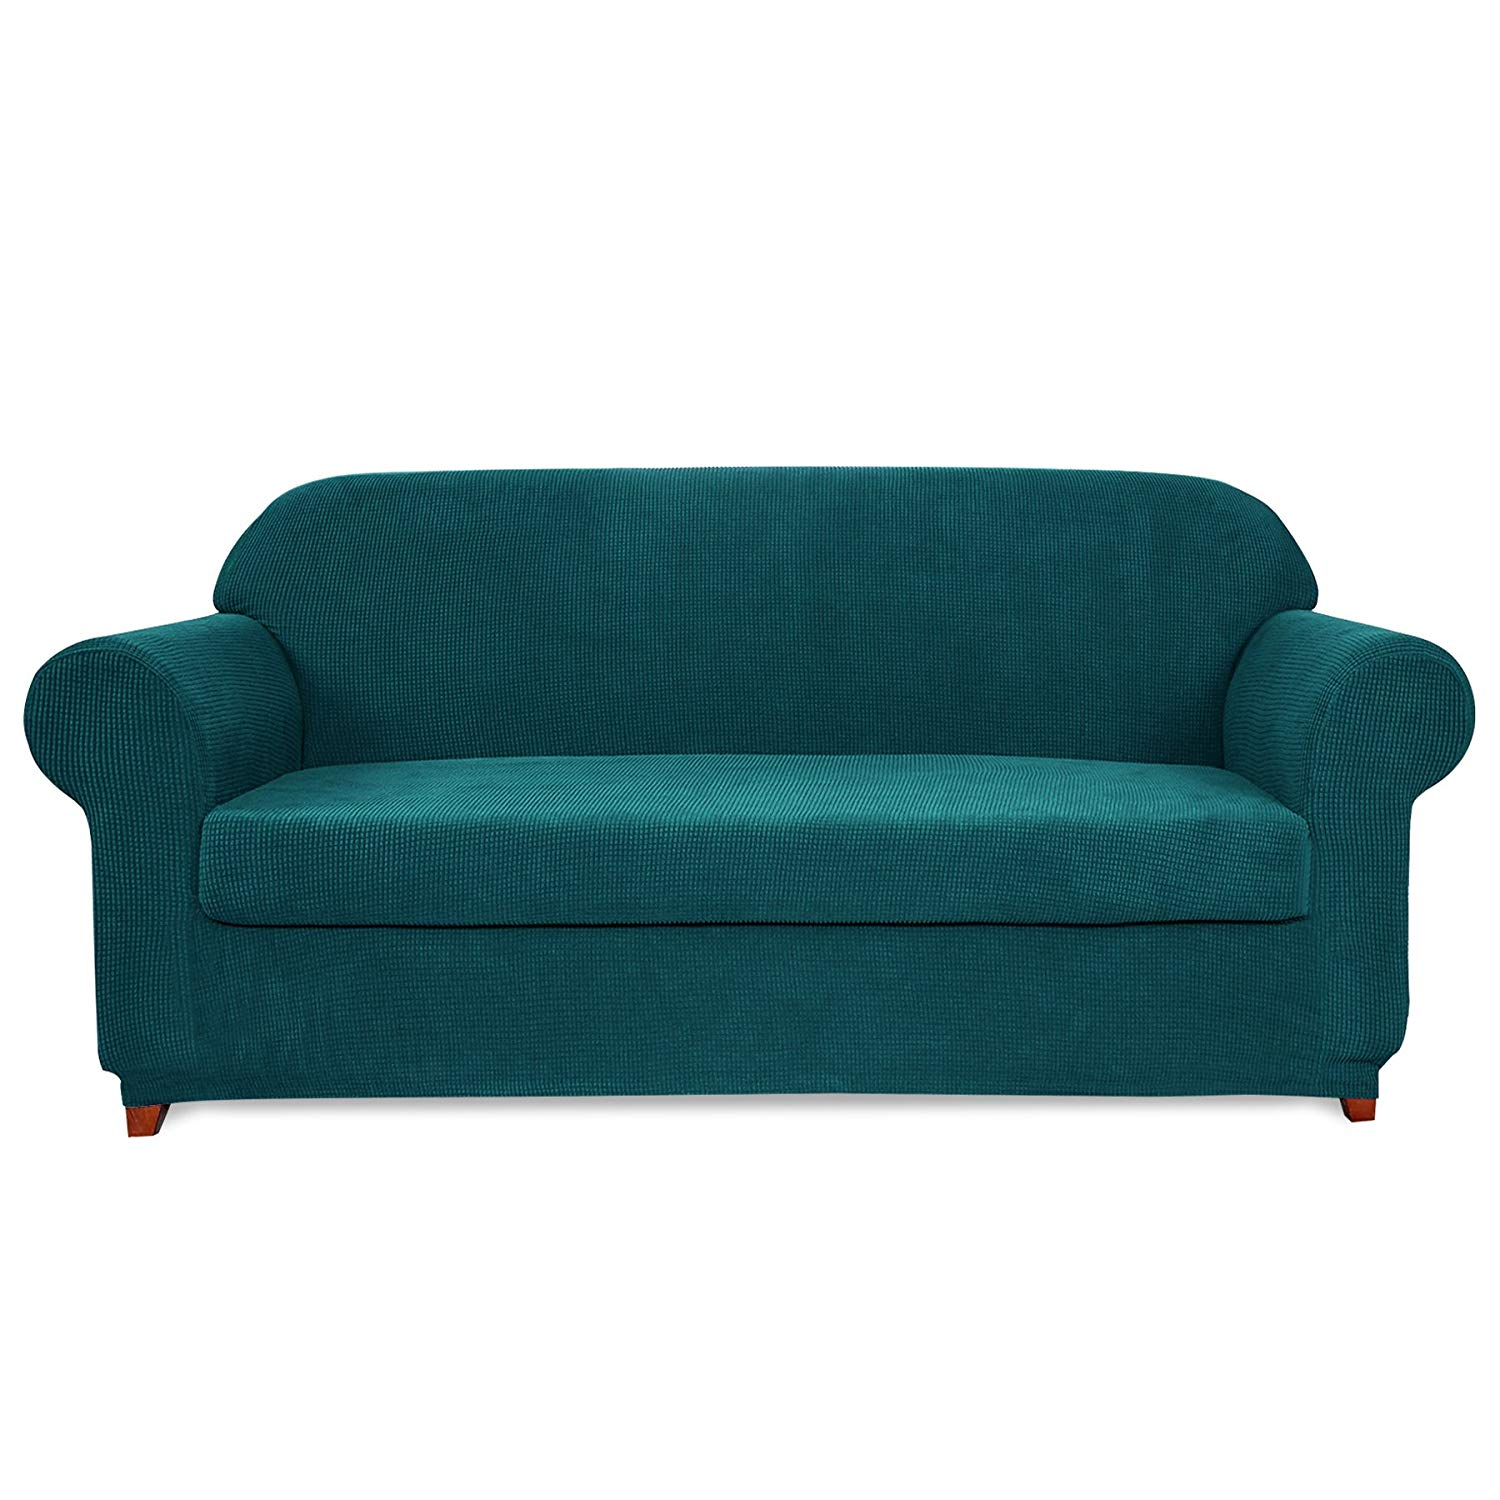 Subrtex-Two-Piece-Spandex-Stretch-Sofa-Slipcover